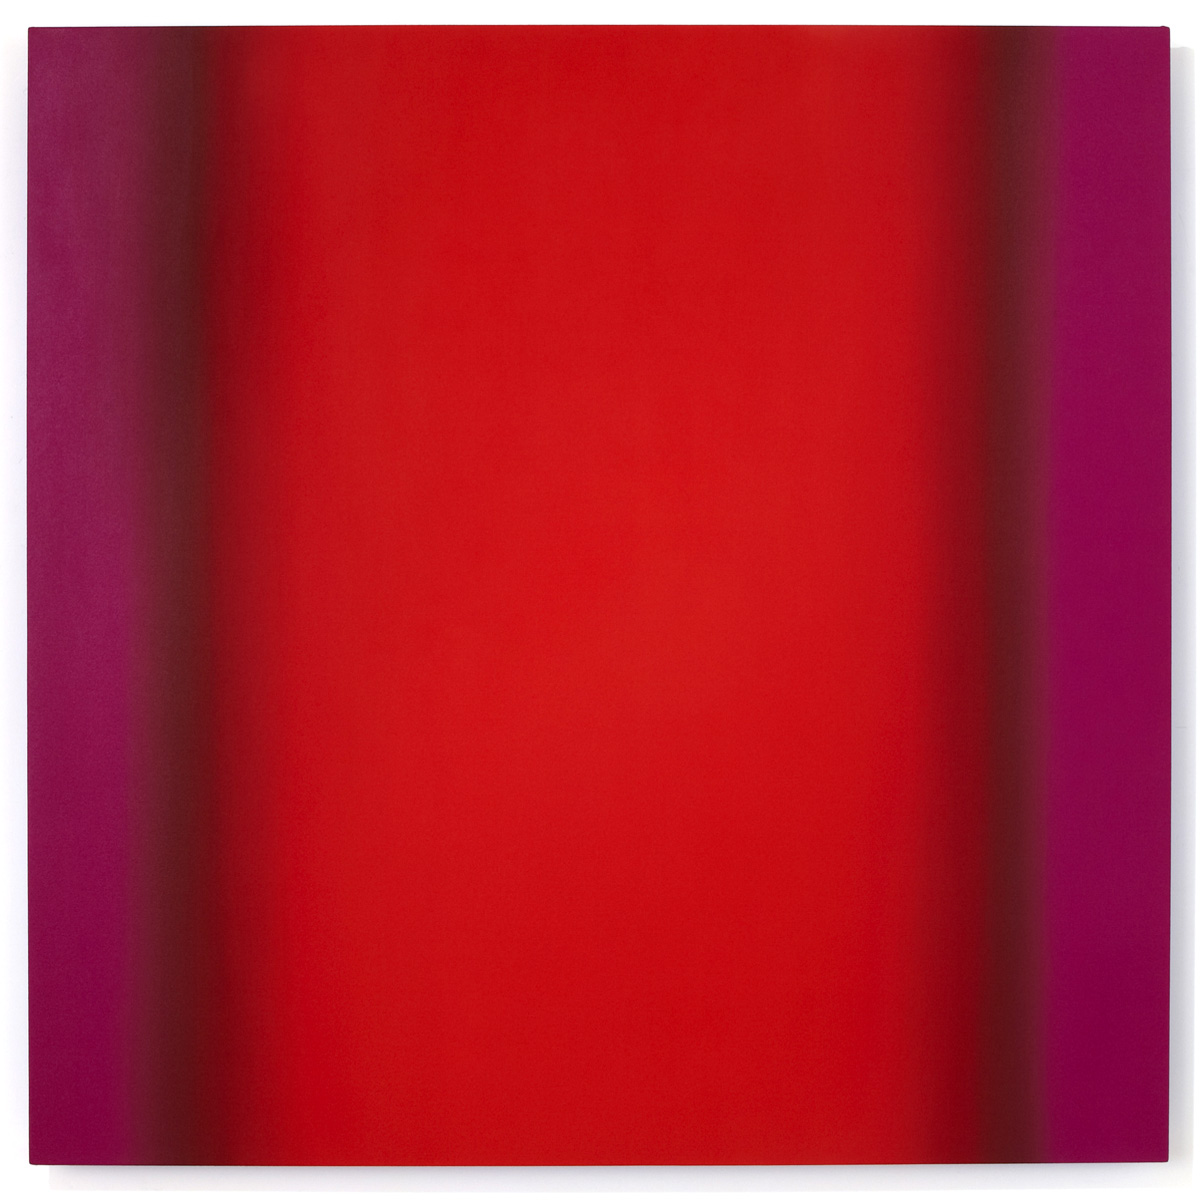 Mind's Eye Red Green 1-S6060 (Red Magenta), Sense Certainty Series, 2014, oil on canvas on custom beveled stretcher, 60 x 60 in. (153 x 153 cm.)